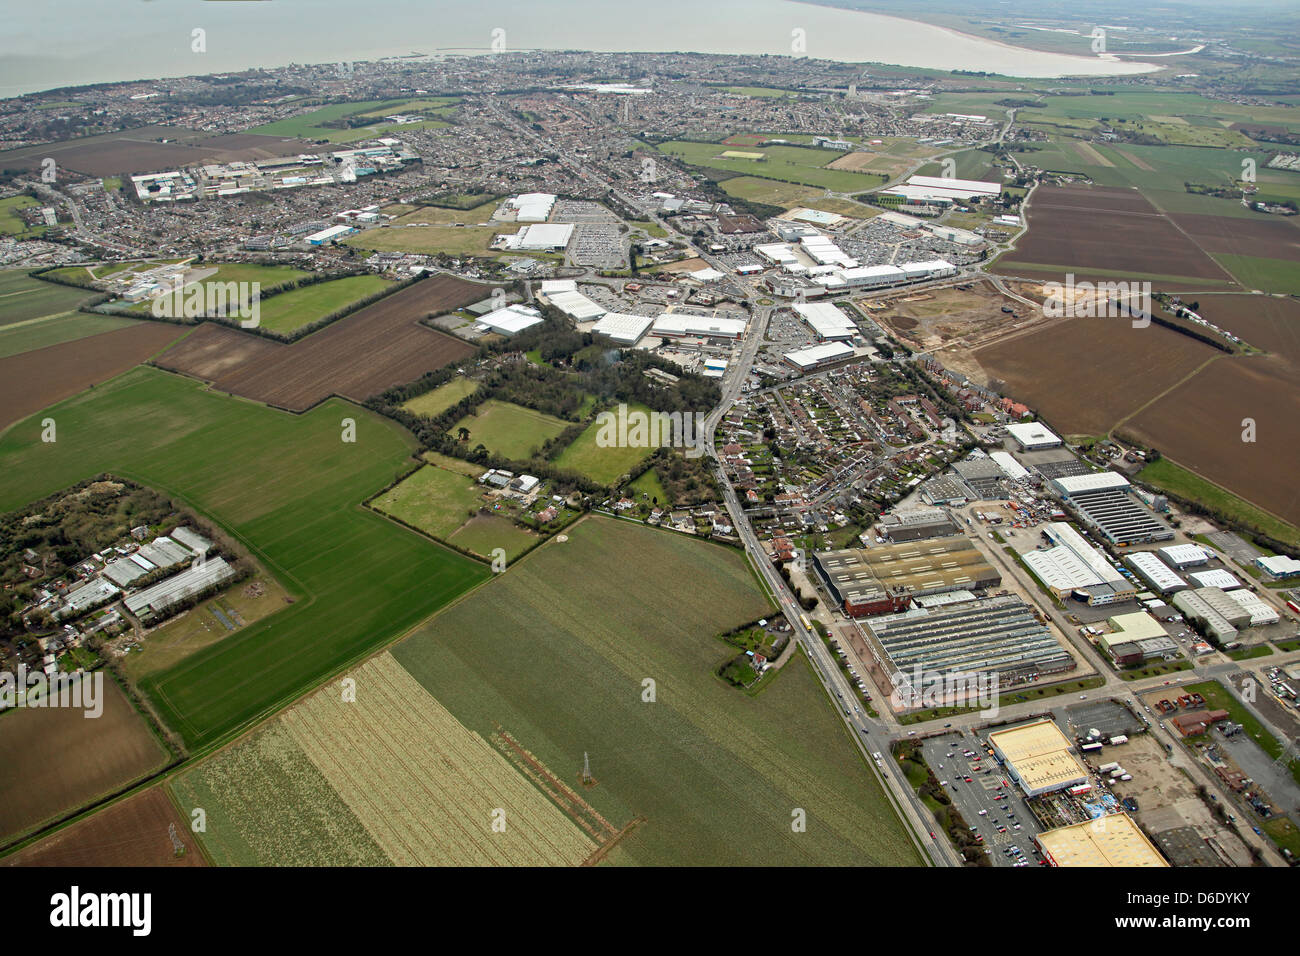 aerial view of the A254 Margate Road looking south towards Ramsgate, Kent. Also show Westwood Industrial Estate. - Stock Image